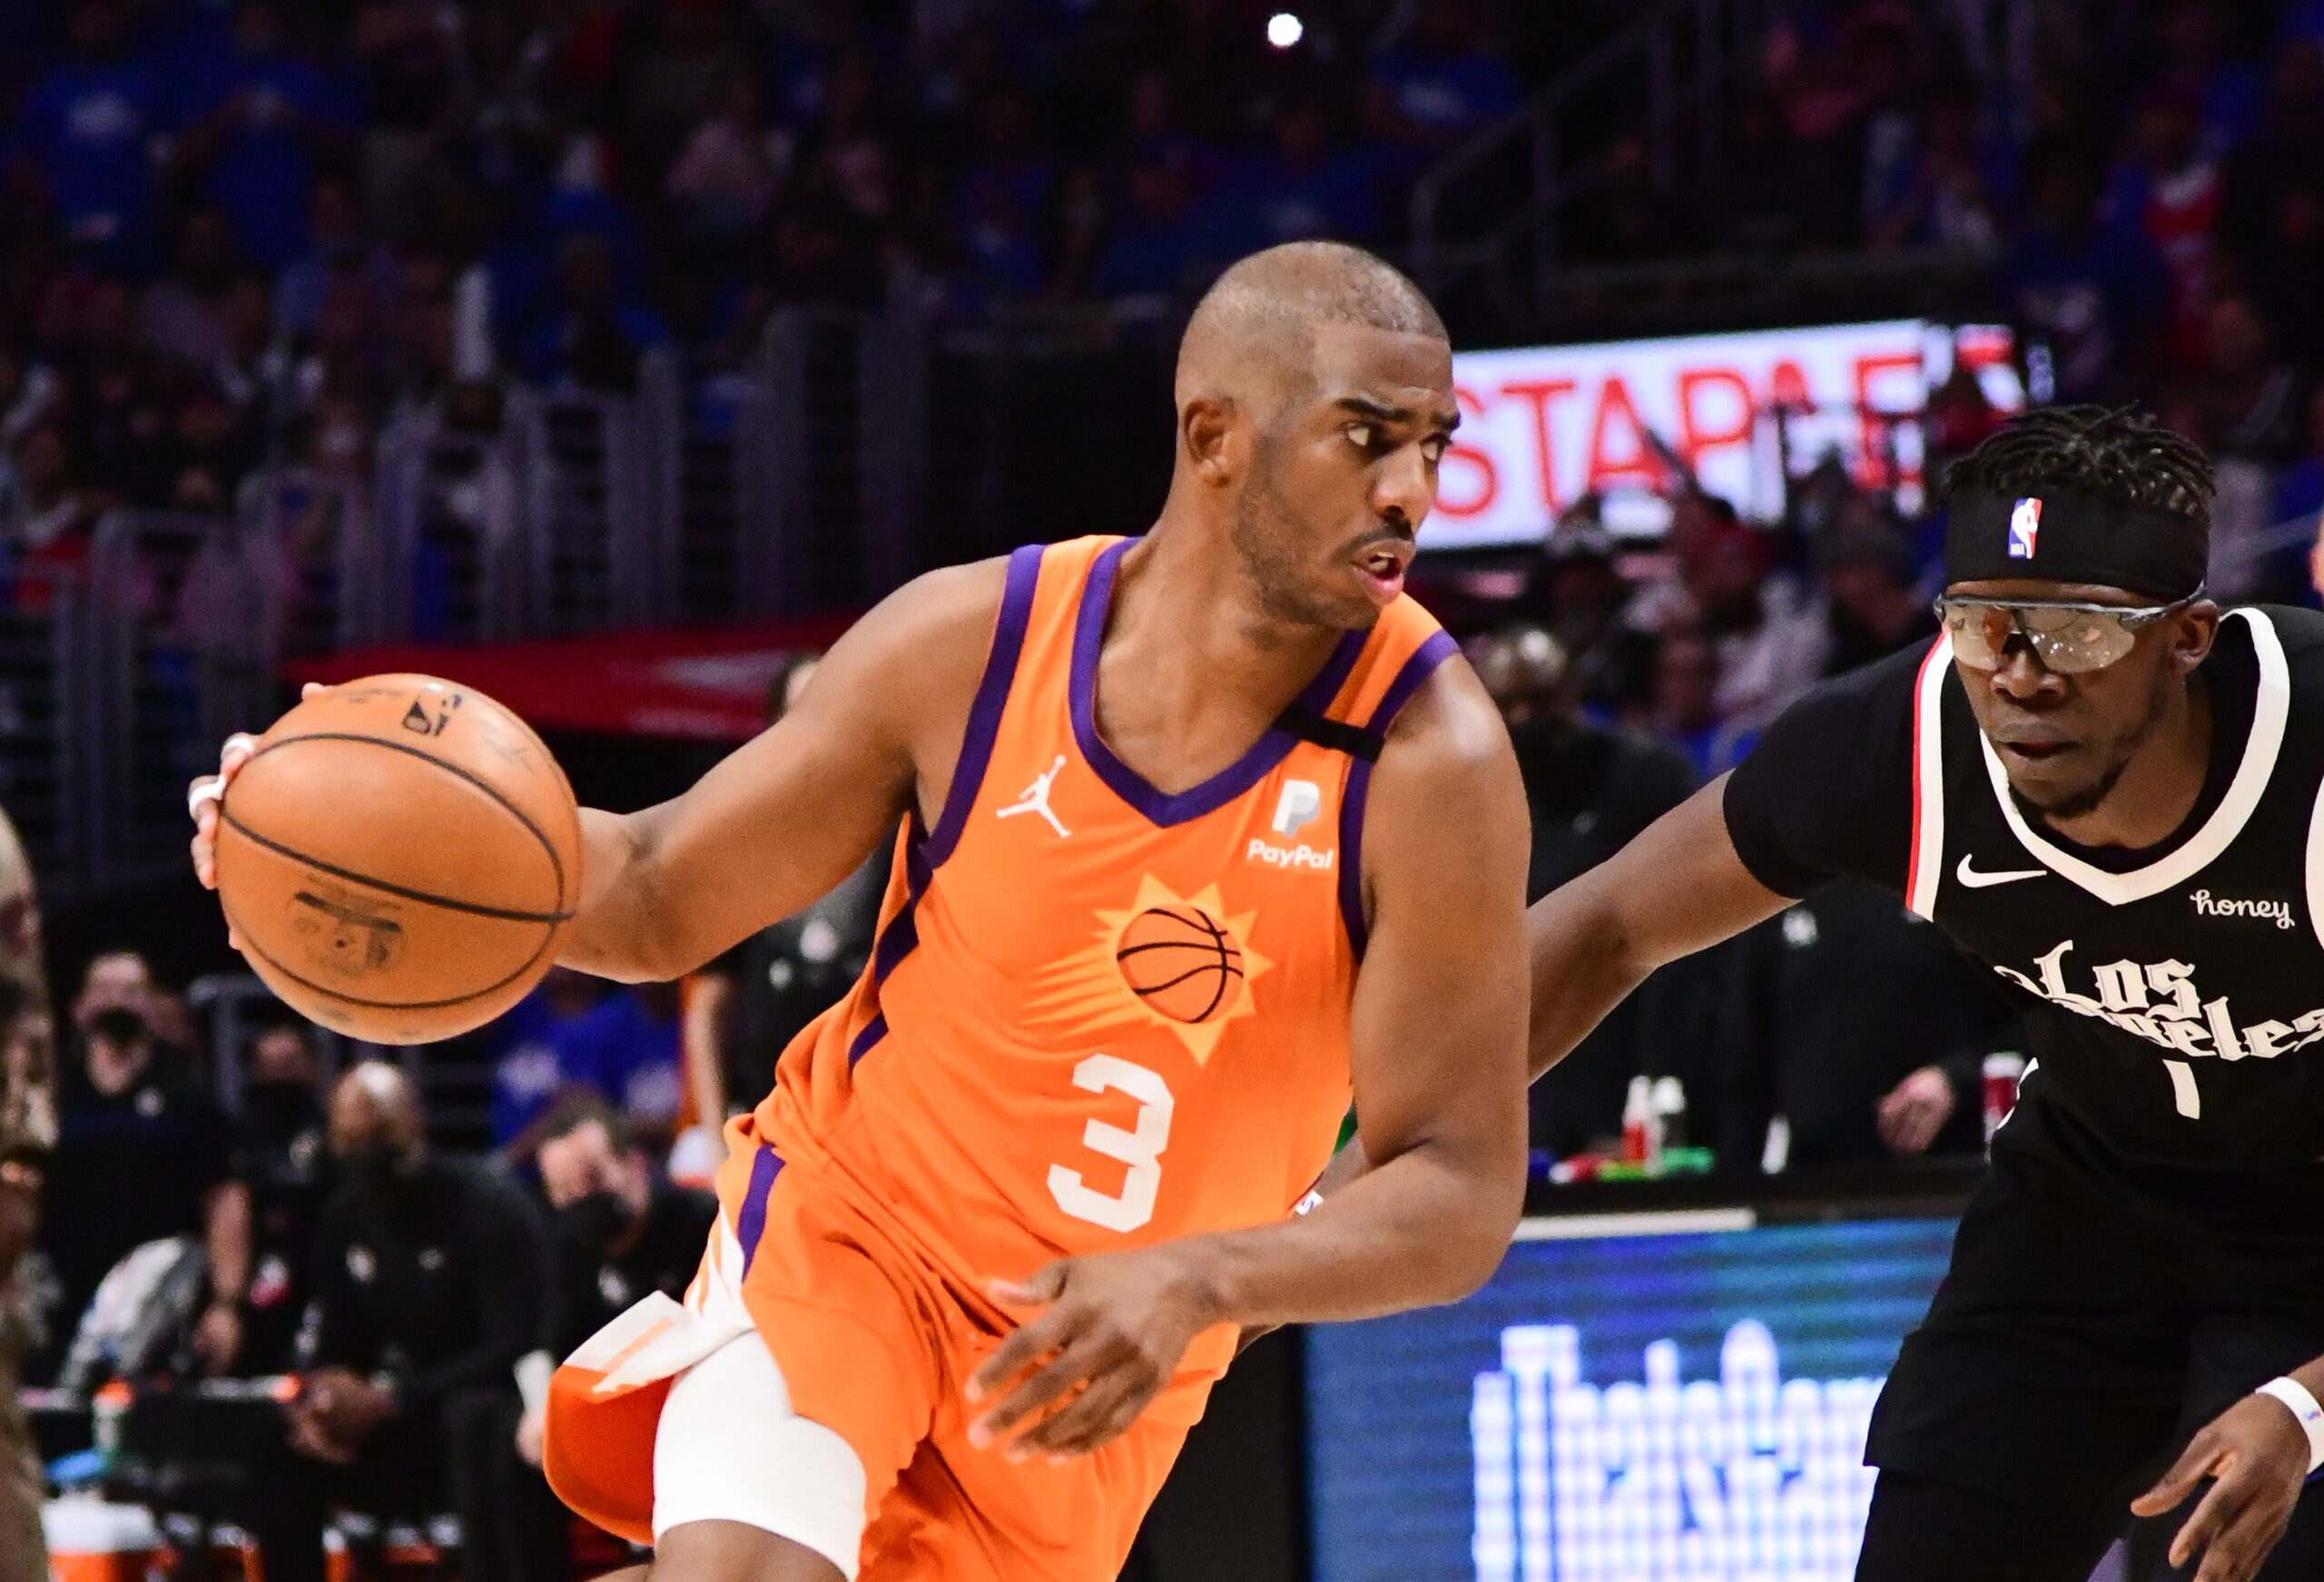 Suns looking to up the pressure and pace in Game 4 against Clippers